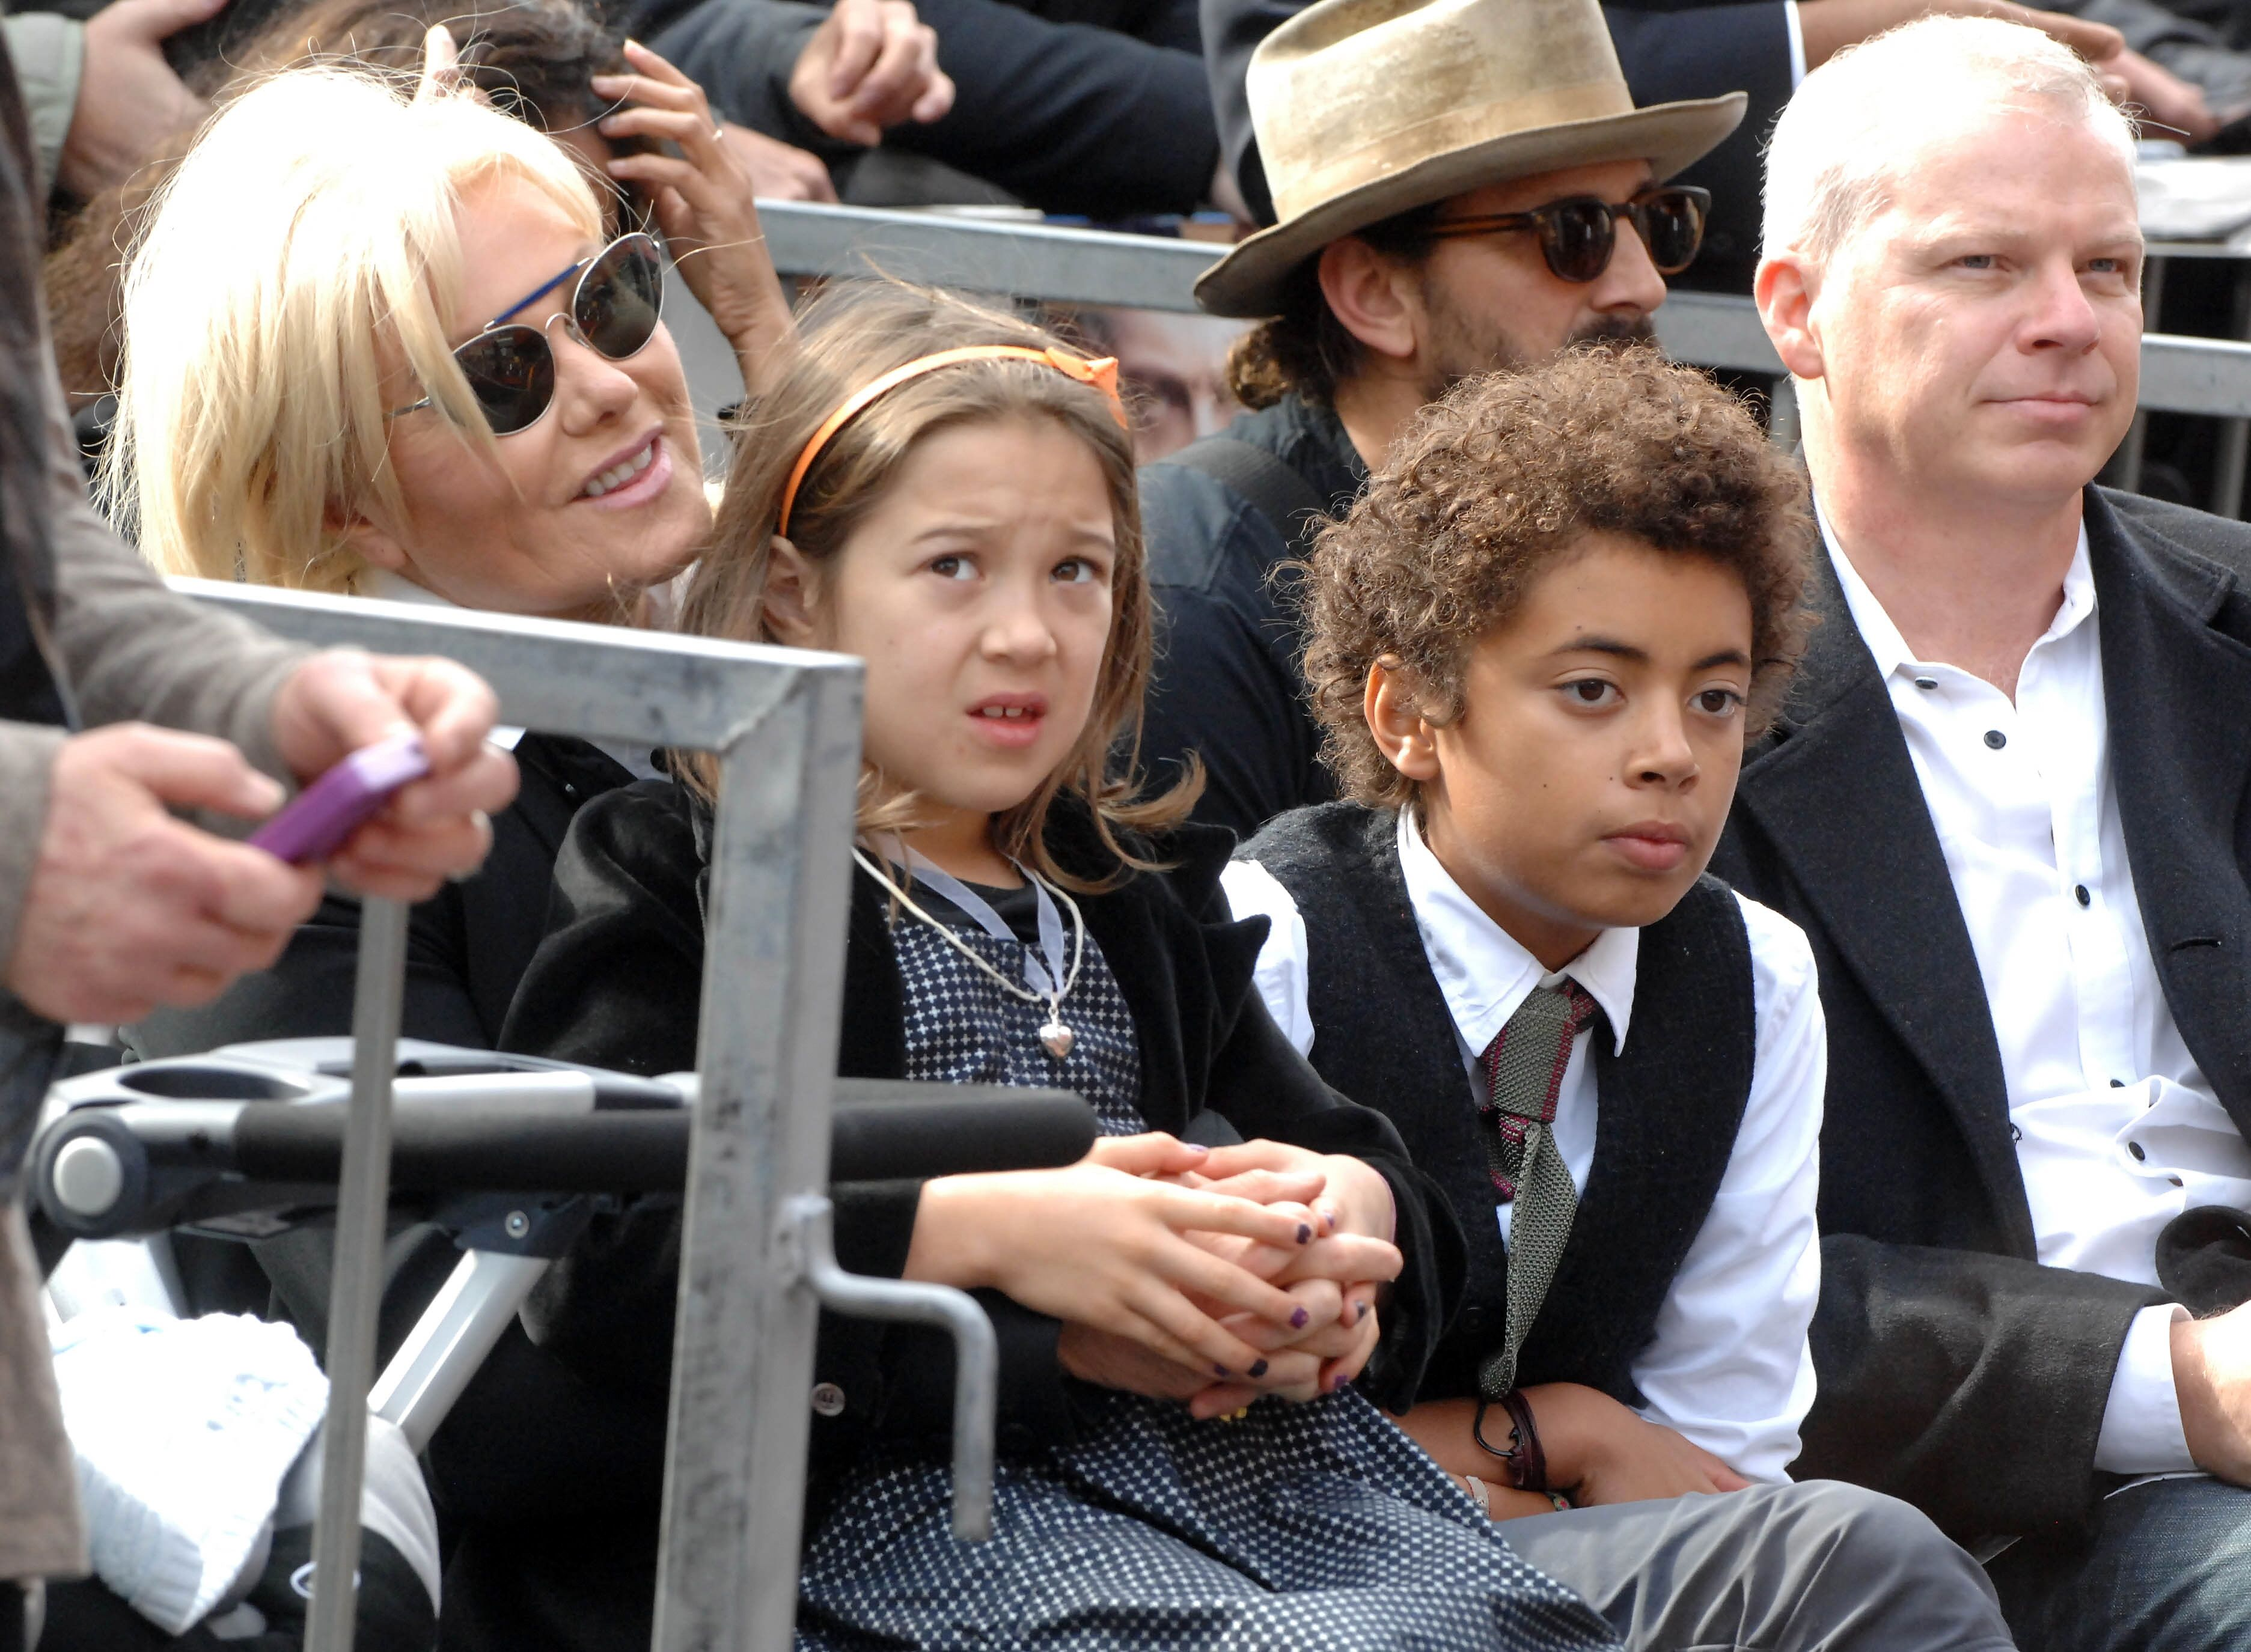 Deborra-Lee Furness and children Ava and Oscar participate in the Hugh Jackman Star ceremony at The Hollywood Walk Of Fame. | Source: Getty Images